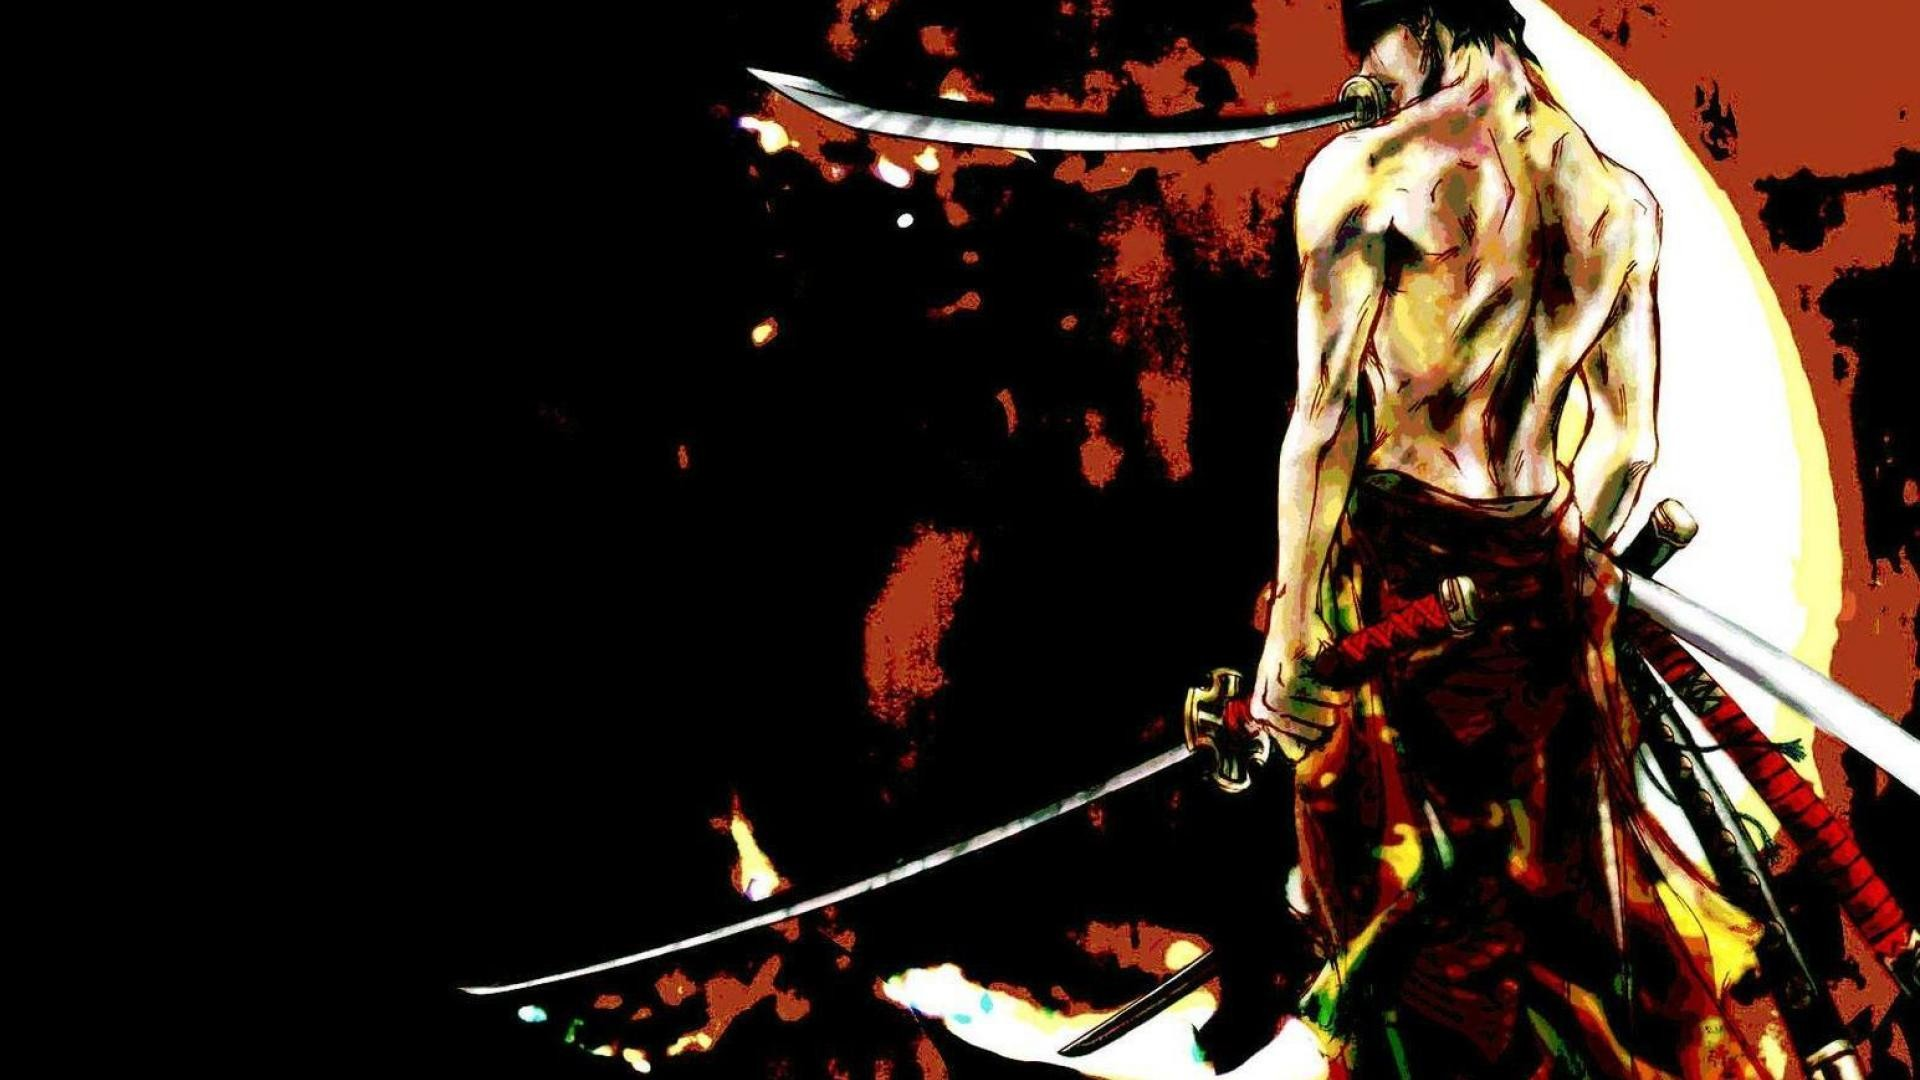 Res: 1920x1080, ... Images For > One Piece Wallpaper Zoro ...